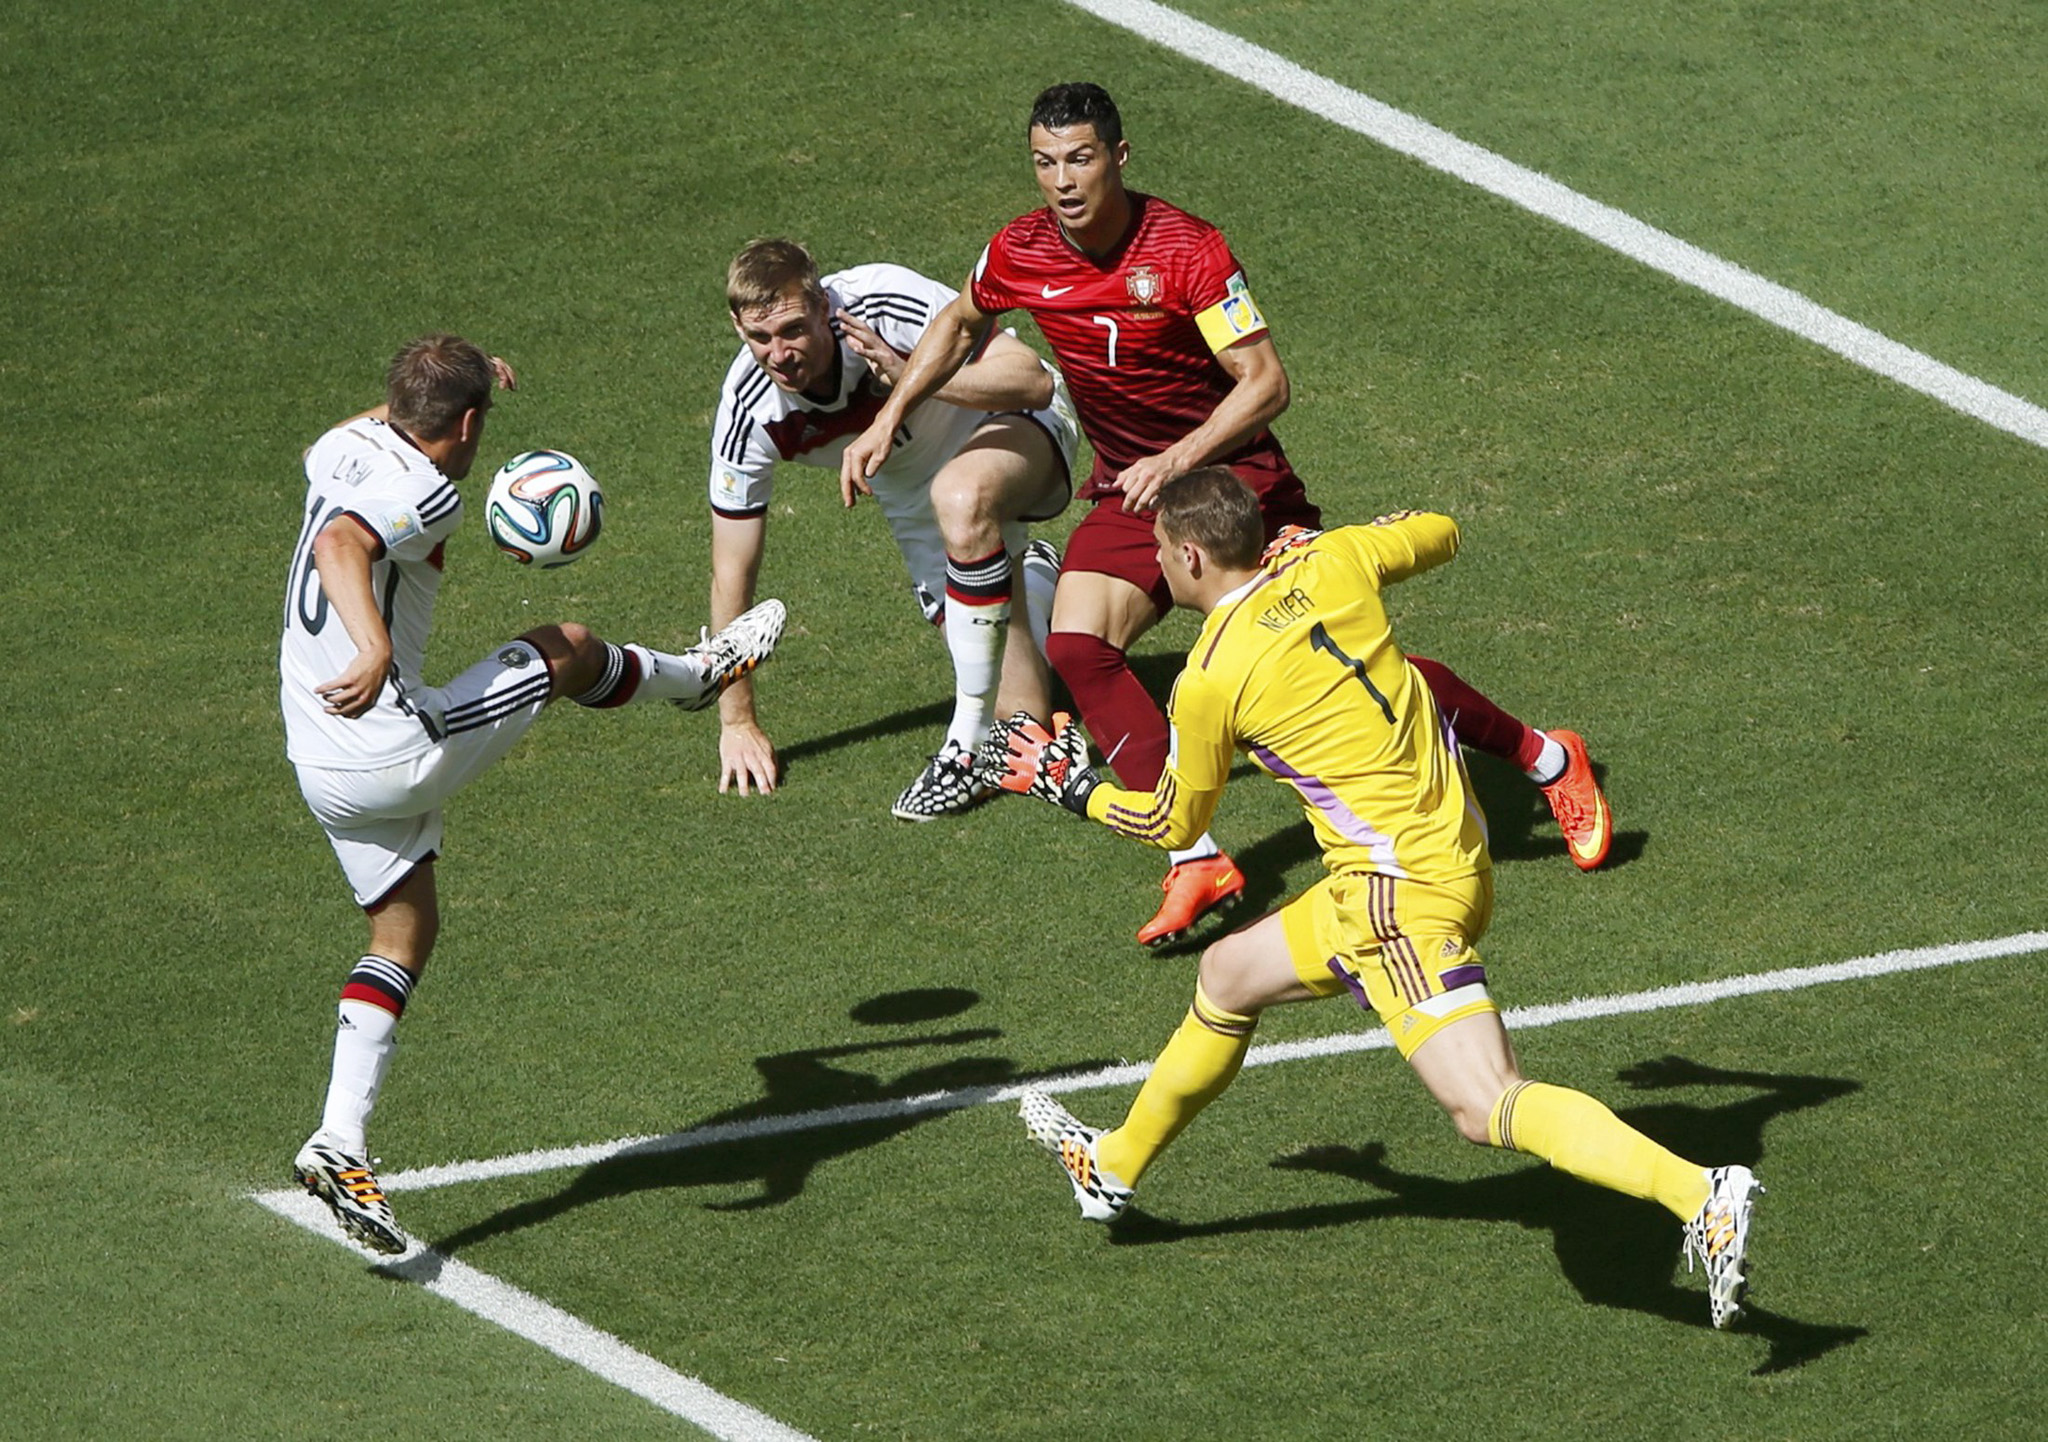 Portugal's Ronaldo fights for the ball with Germany's Lahm, Mertesacker and Neuer during their 2014 World Cup Group G soccer match at the Fonte Nova arena in Salvador...Portugal's Cristiano Ronaldo (2nd R) fights for the ball with Germany's Philipp Lahm (L-R), Per Mertesacker and Manuel Neuer during their 2014 World Cup Group G soccer match at the Fonte Nova arena in Salvador June 16, 2014.  REUTERS/Fabrizio Bensch (BRAZIL  - Tags: SOCCER SPORT WORLD CUP)